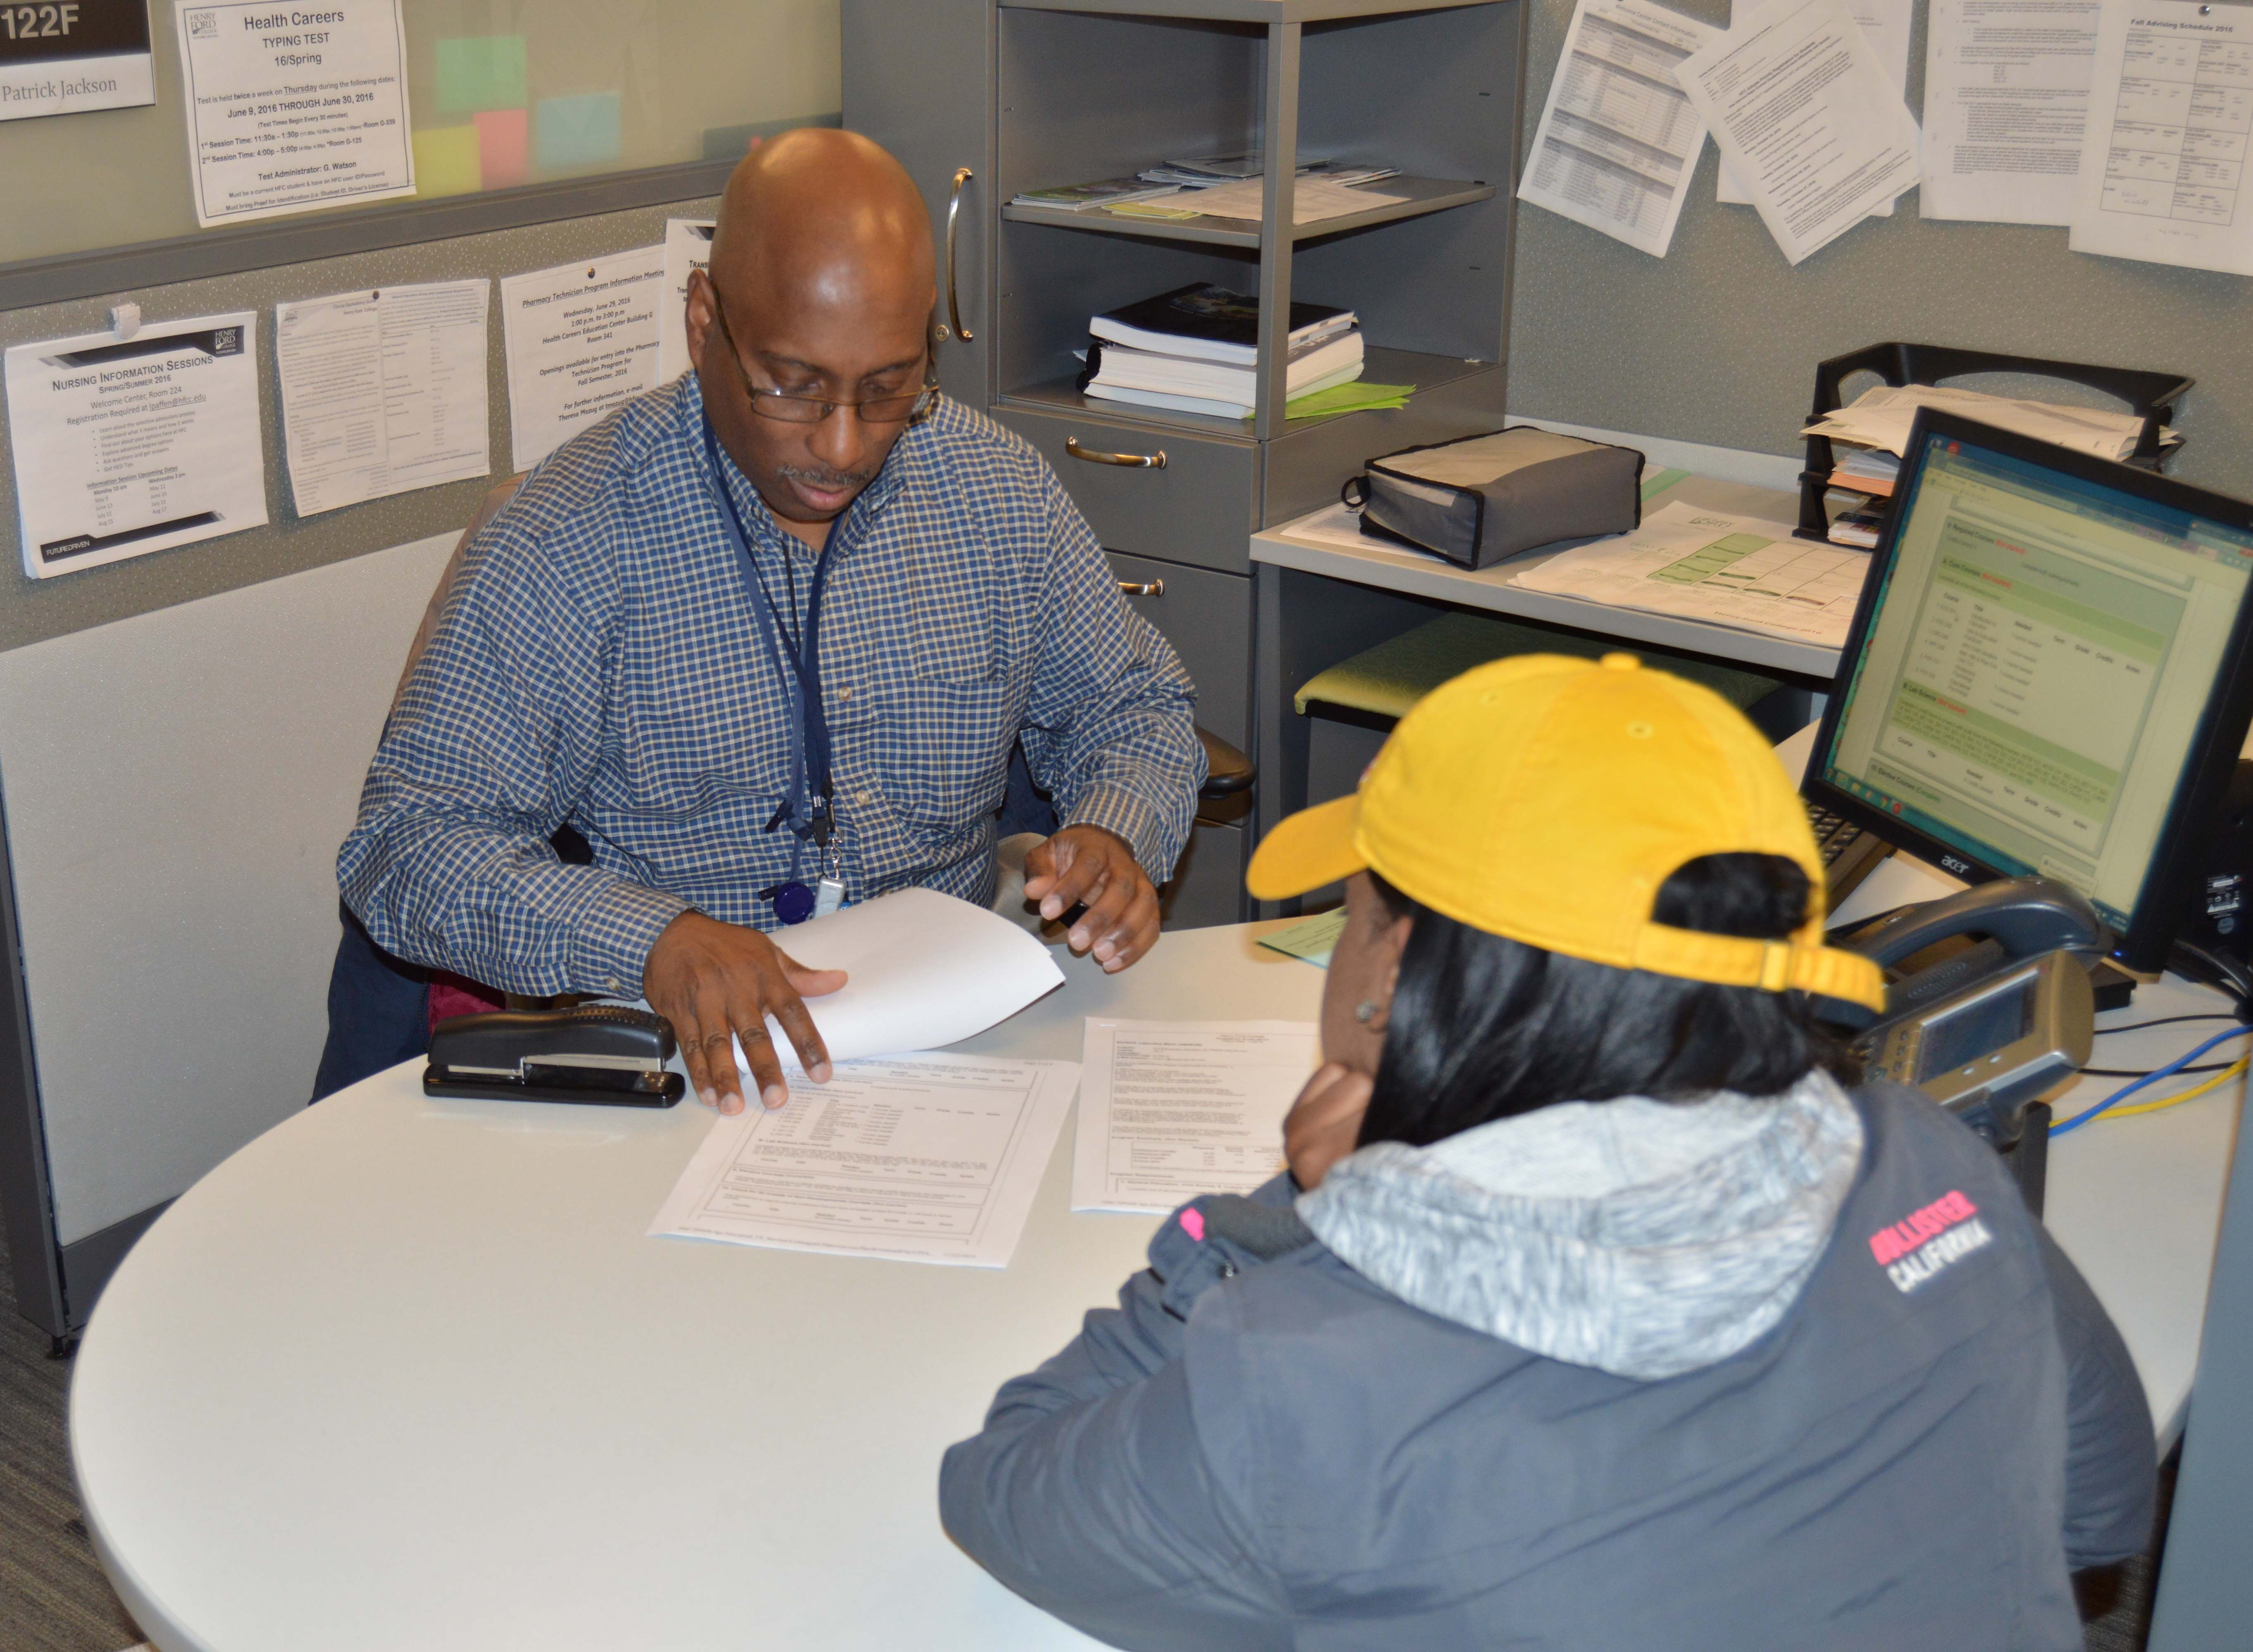 An advisor sits at desk with student, reviewing printed transcripts.